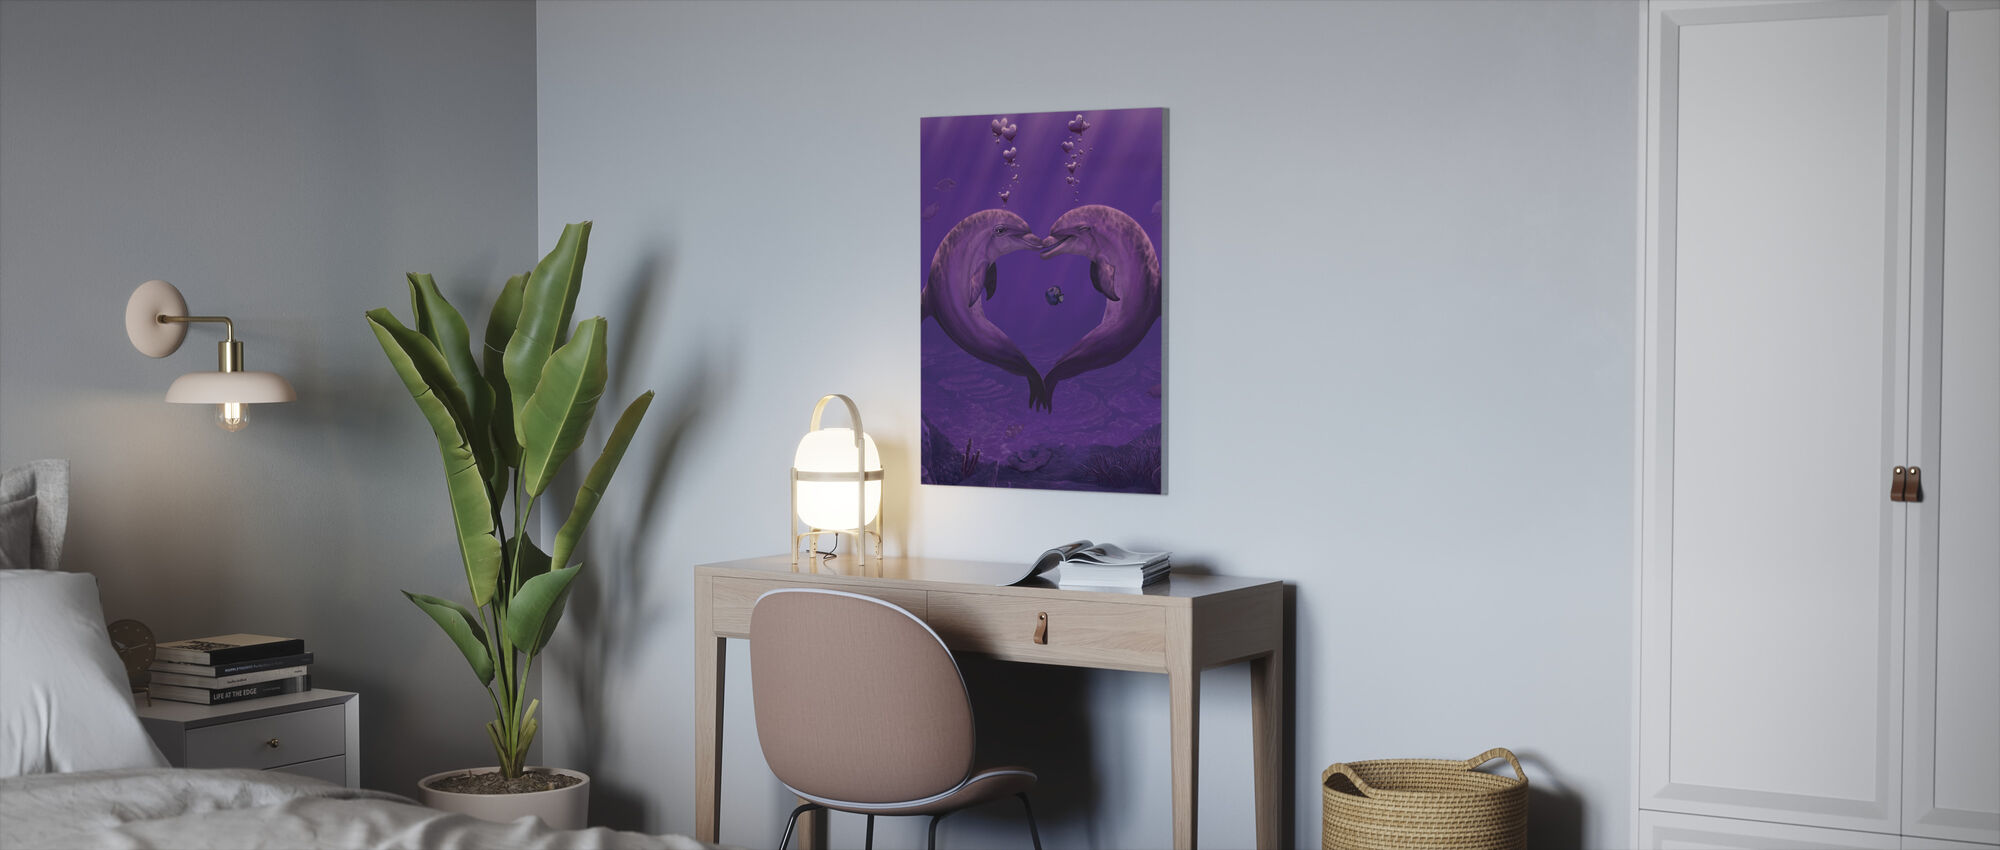 Sea of Hearts - Canvas print - Office